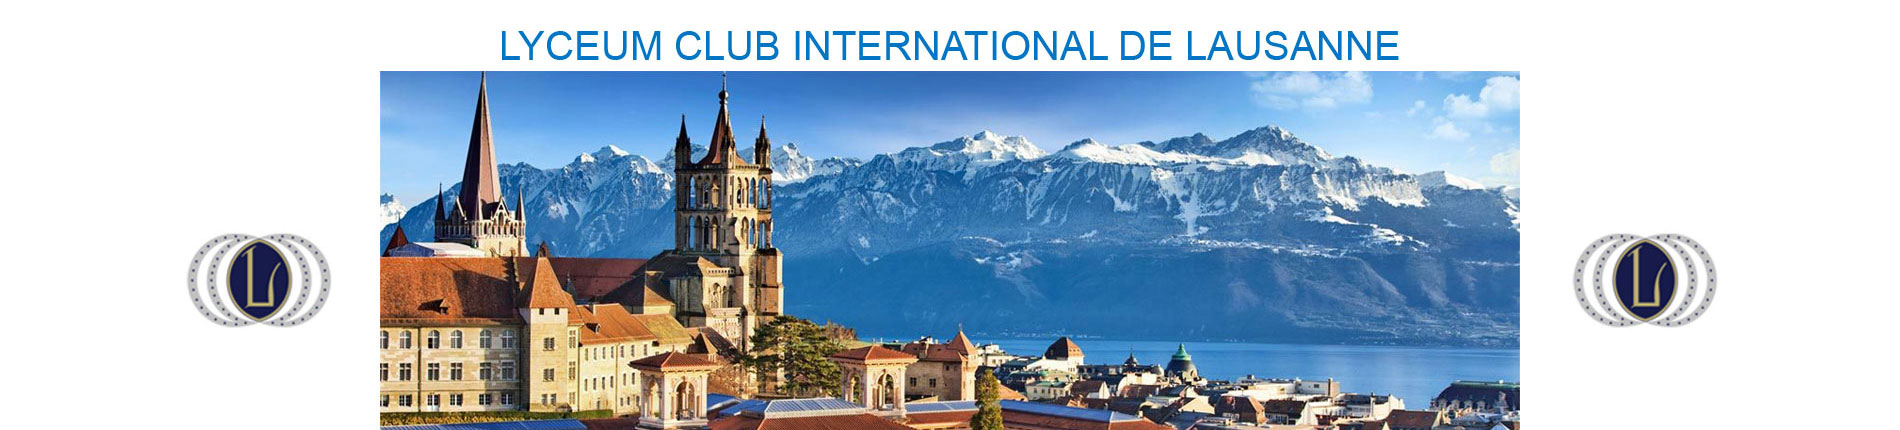 Lyceum Club International de Lausanne